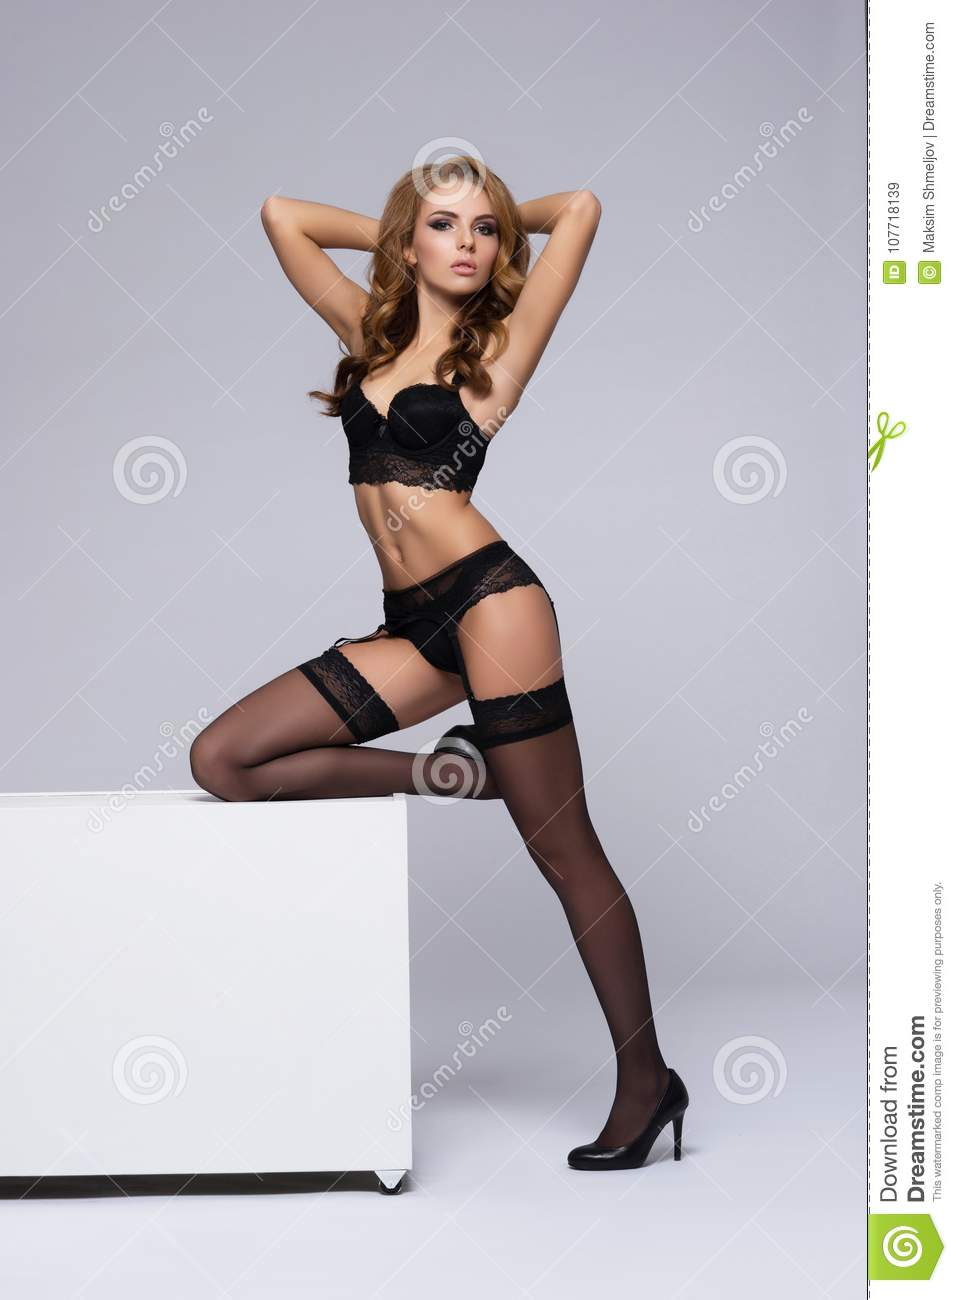 for that interfere classy eurobabe assfucked after cocksucking opinion, you are